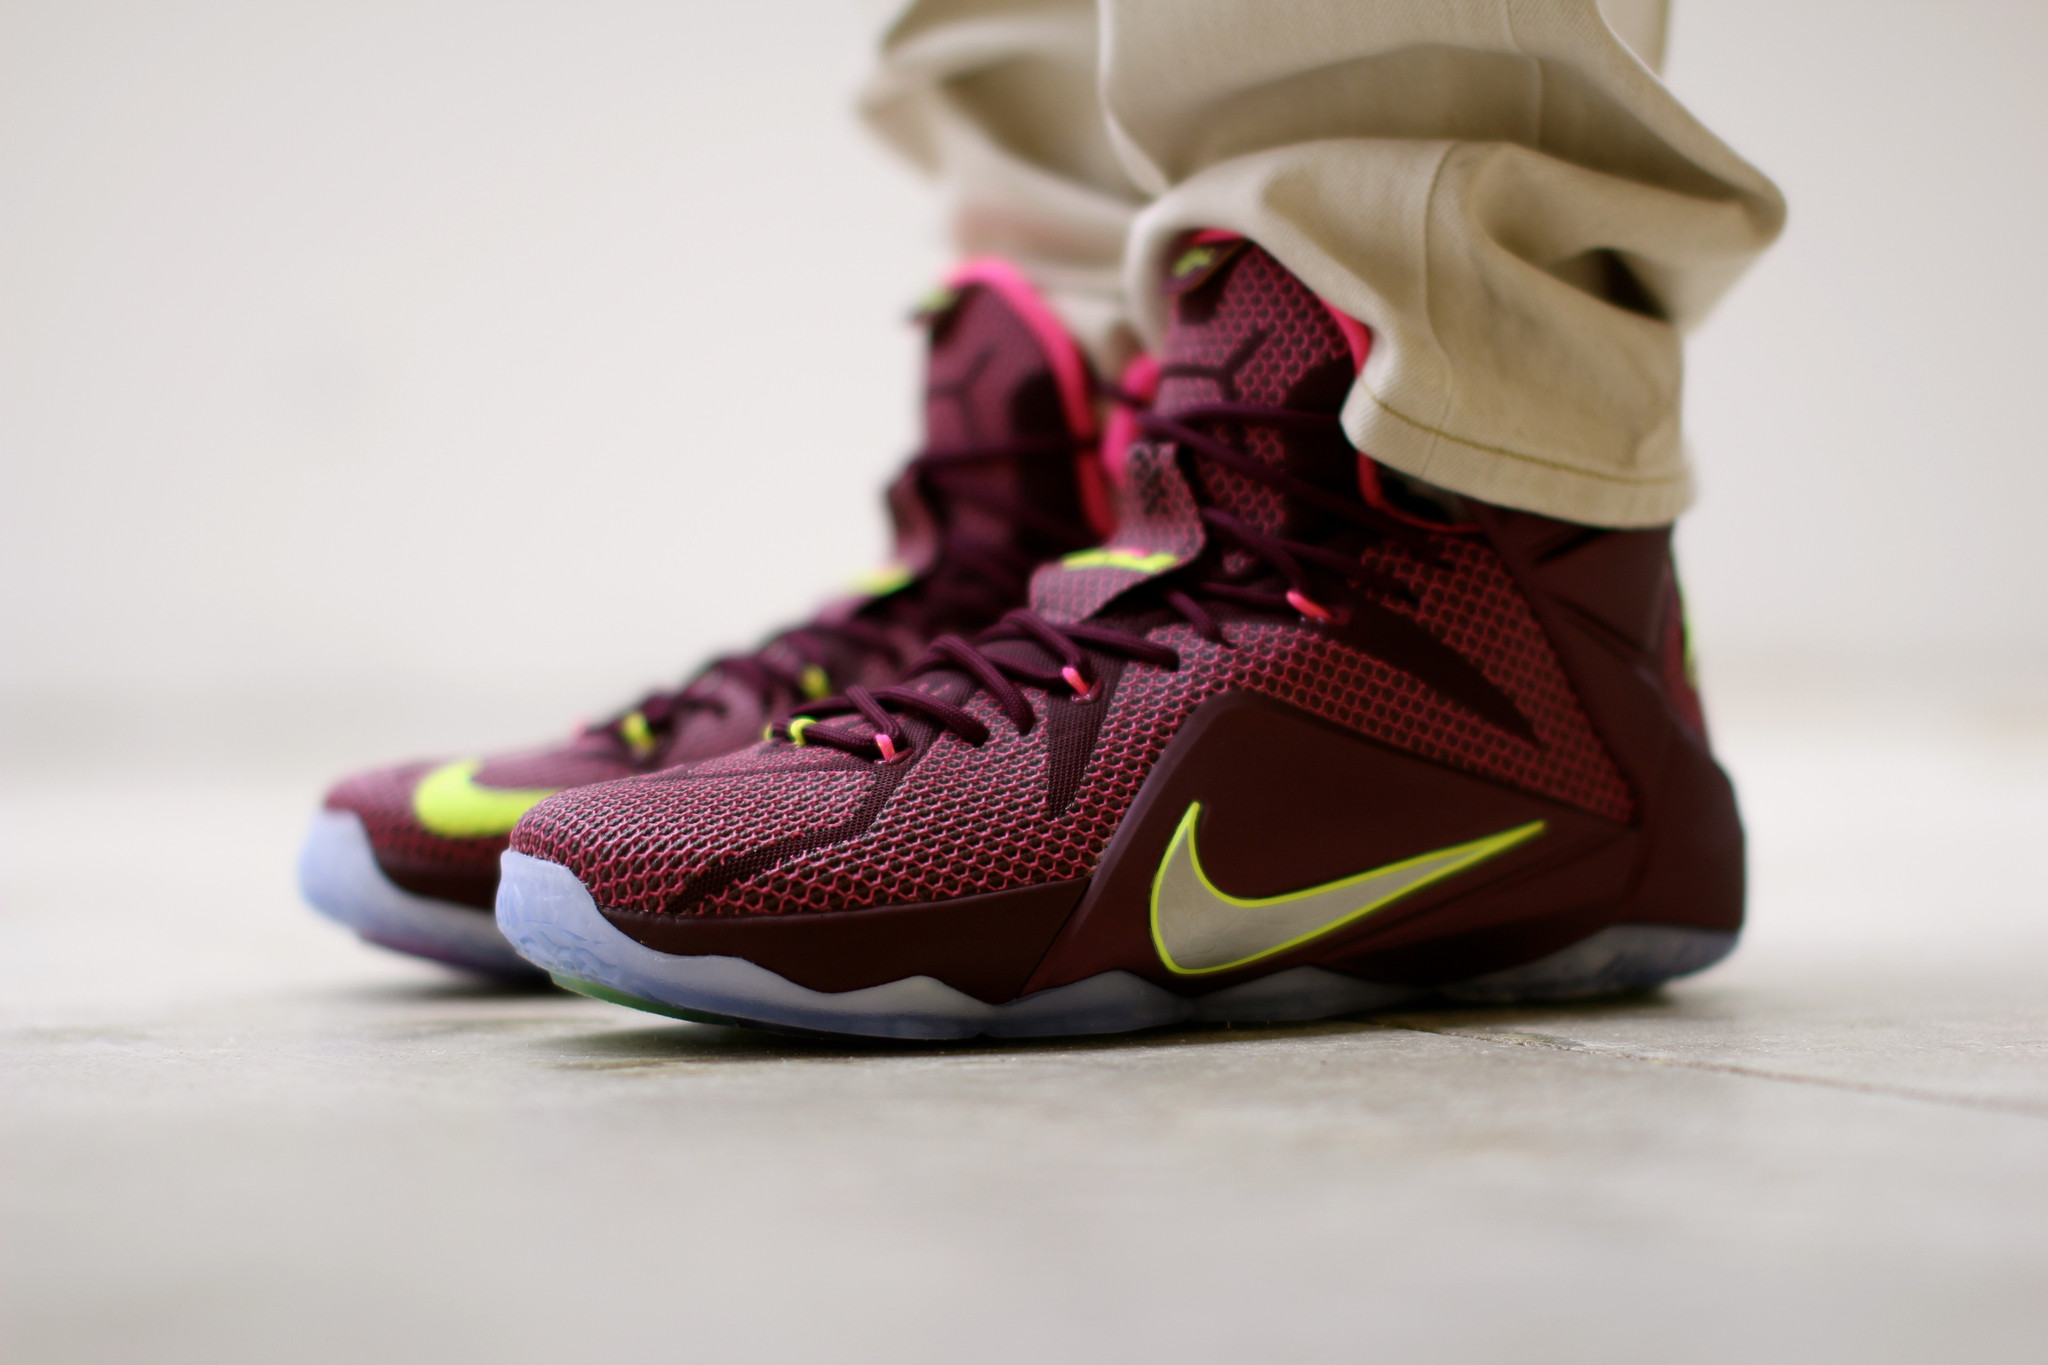 outlet store 9943f 1764f new style nike lebron 12 precio in india 0bd9f 58bf4